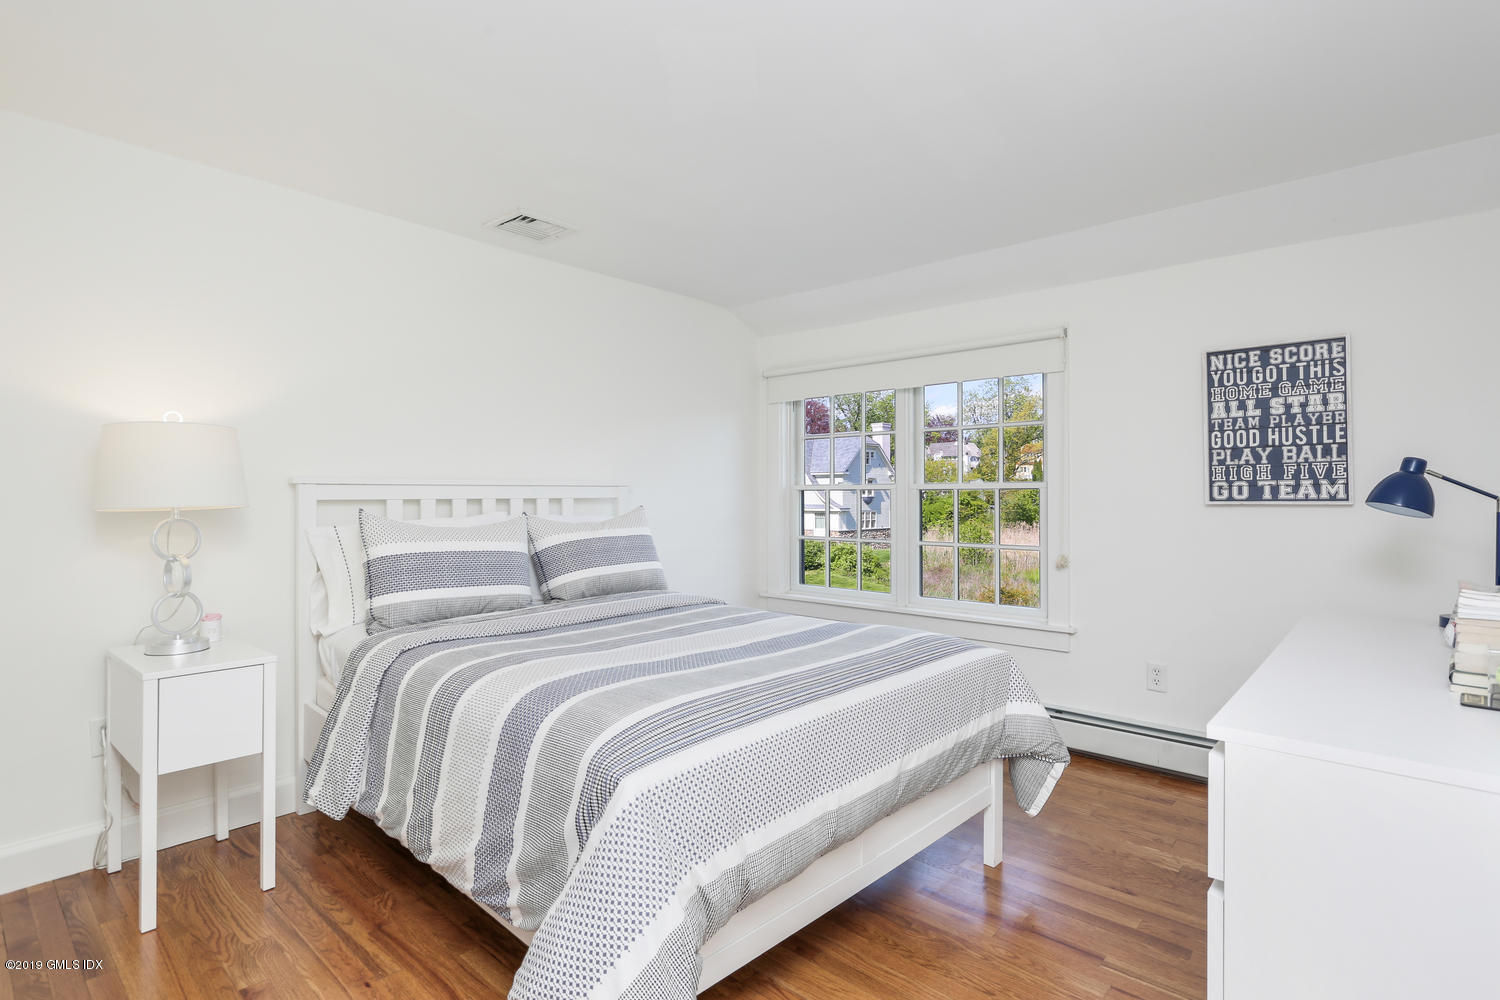 11 Greenwich Cove Drive,Old Greenwich,Connecticut 06870,4 Bedrooms Bedrooms,3 BathroomsBathrooms,Single family,Greenwich Cove,106619